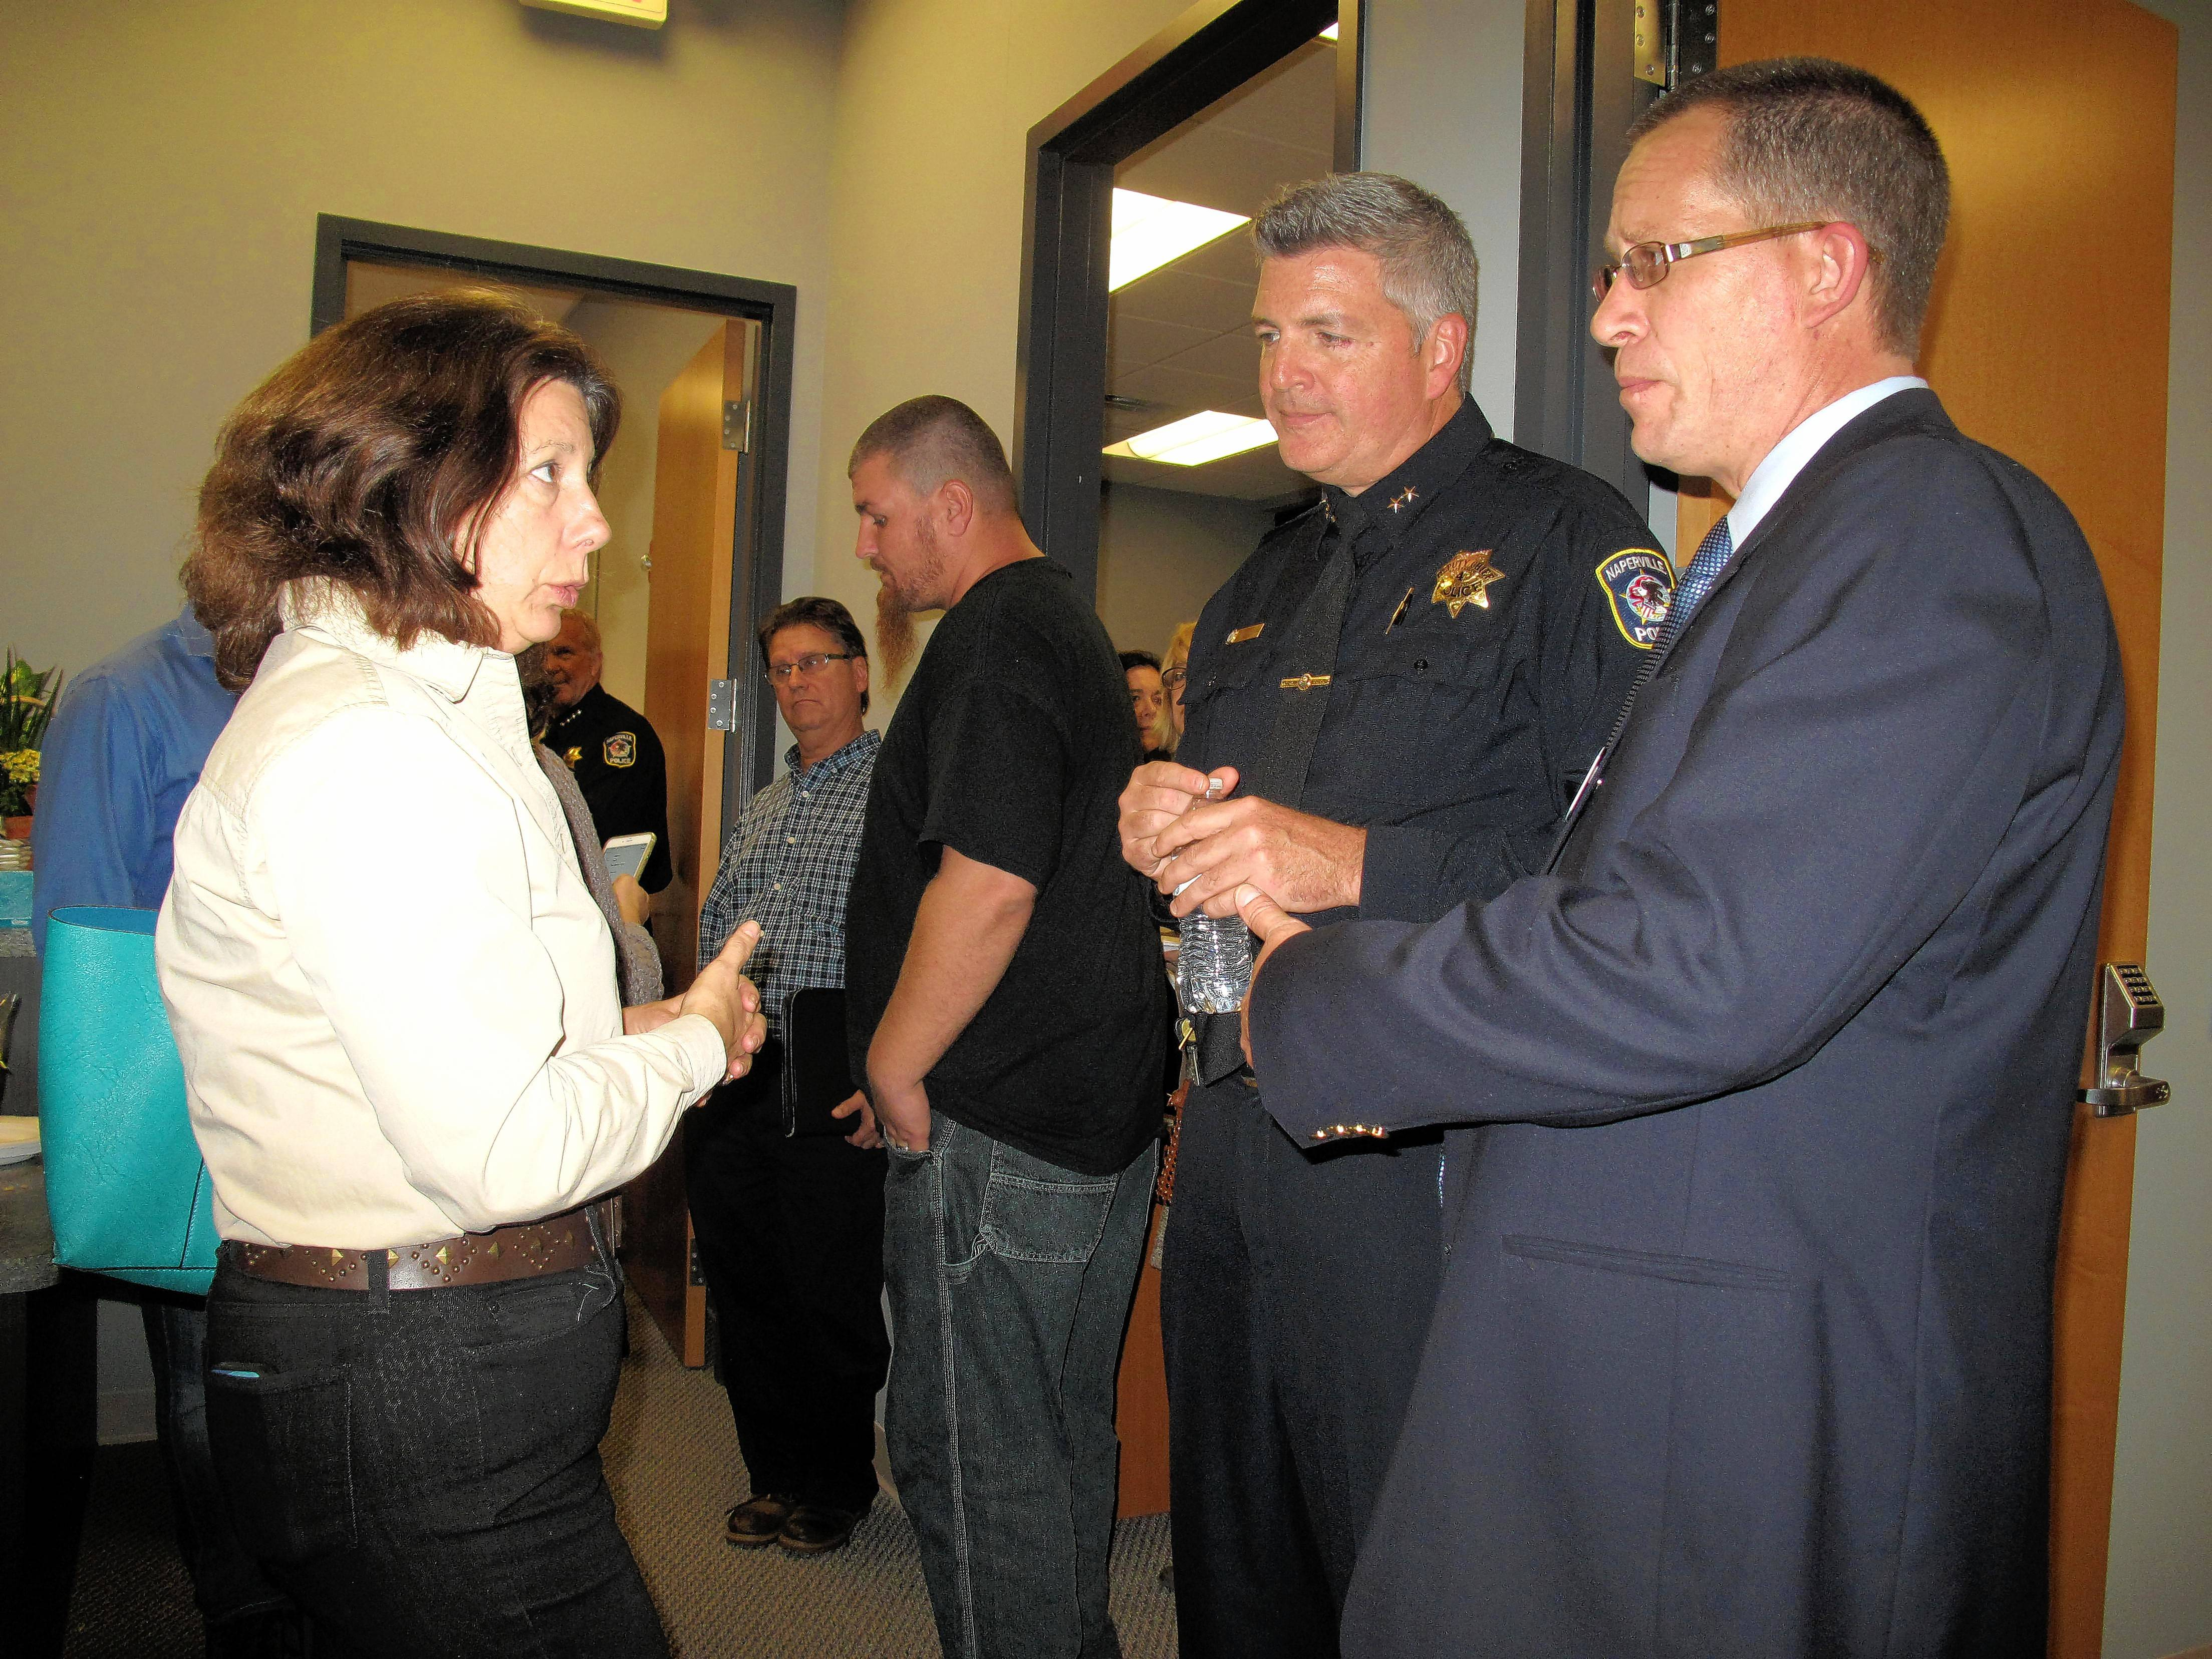 Naperville Deputy Police Chief Brian Cunningham, center, is leading creation of a program called Connect for Life, which launches Monday, to help heroin users find appropriate treatment. Banyan Treatment Center in downtown Naperville, where Cunningham talks with Caroline Kacena, who lost her son to an overdose, and Tim Ryan, who runs A Man In Recovery Foundation, is one of several participating treatment facilities.